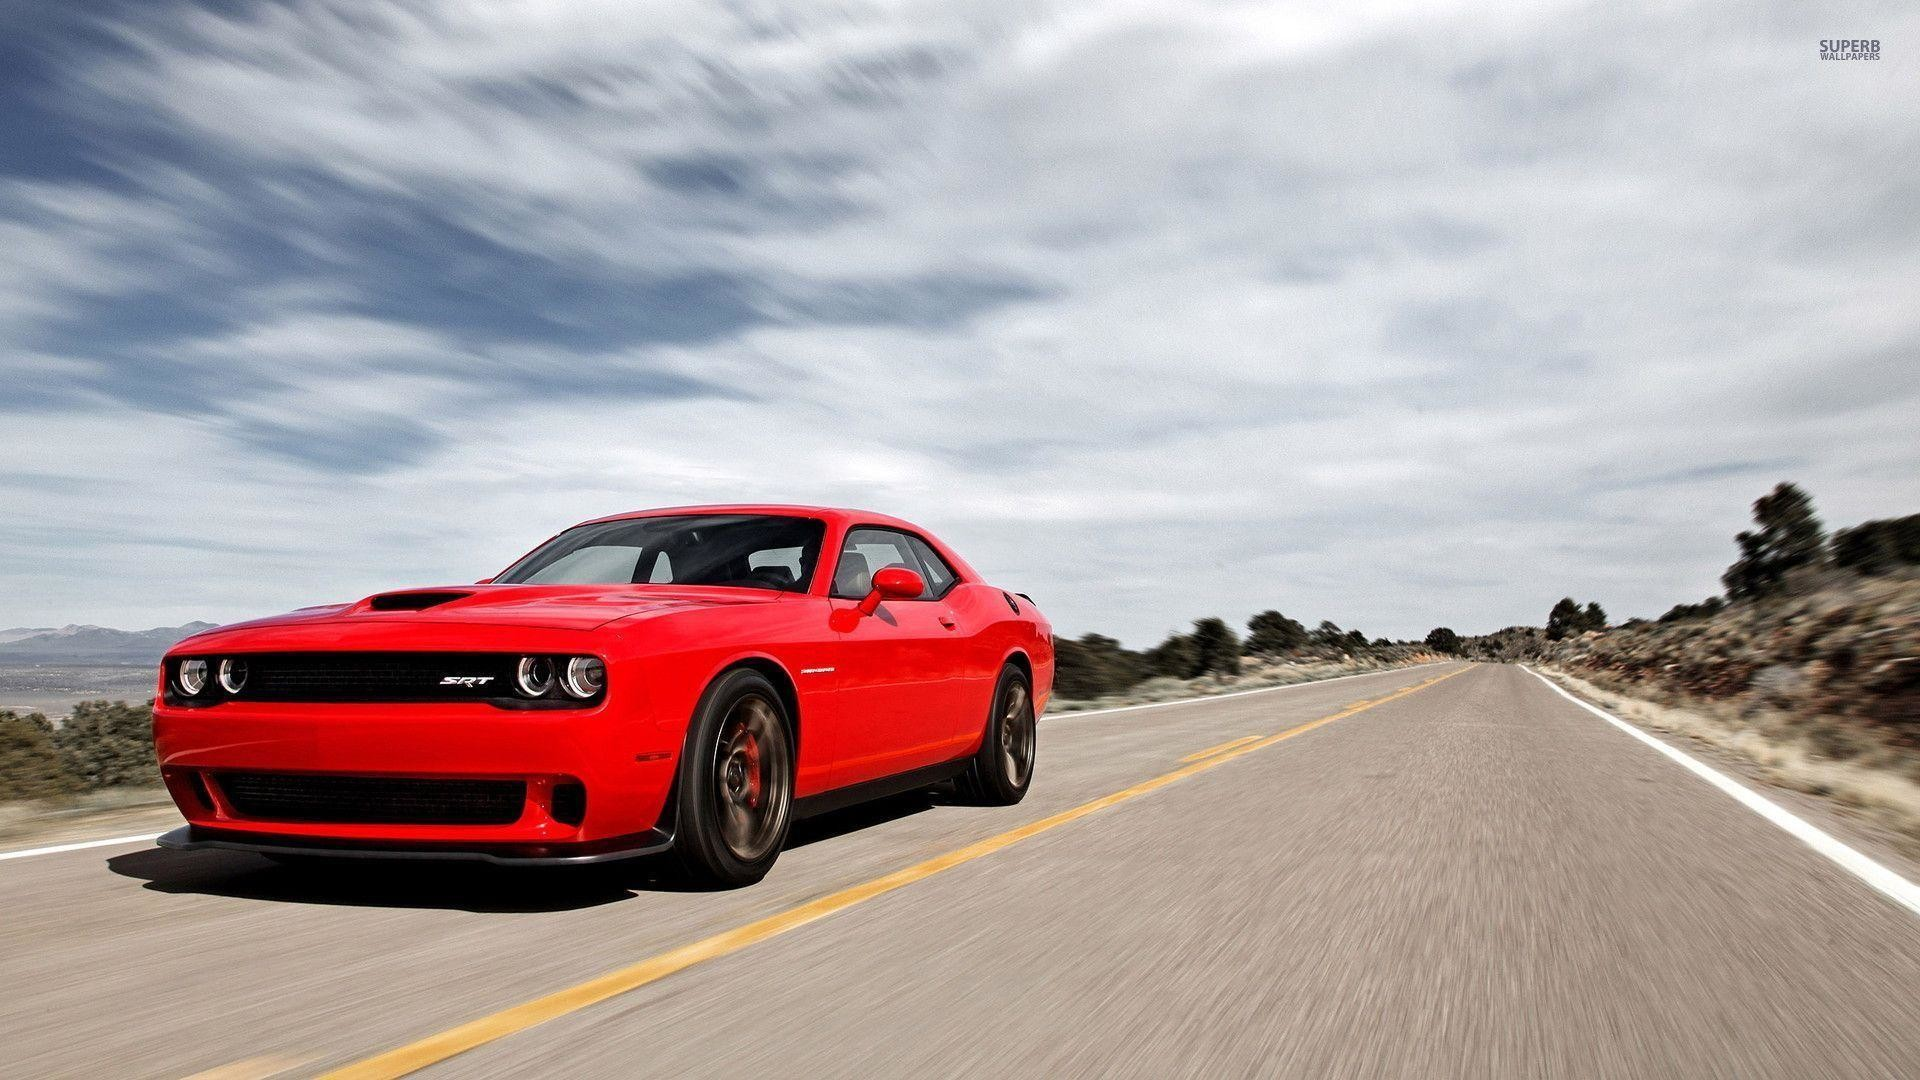 Res: 1920x1080, 2015 Dodge Challenger SRT Hellcat wallpaper - Car wallpapers - #